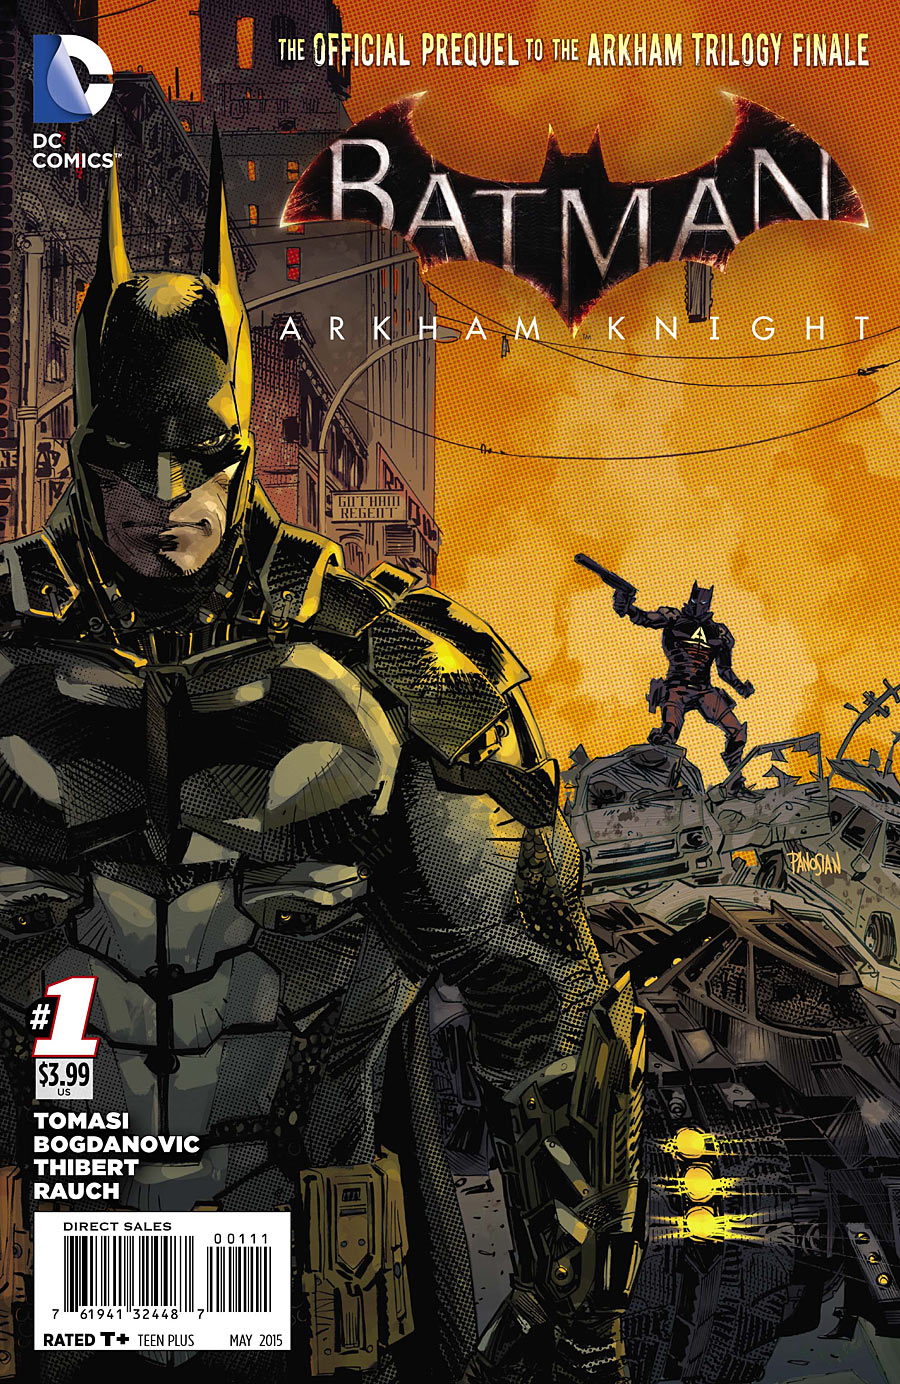 Batman Arkham Knight Comic Book